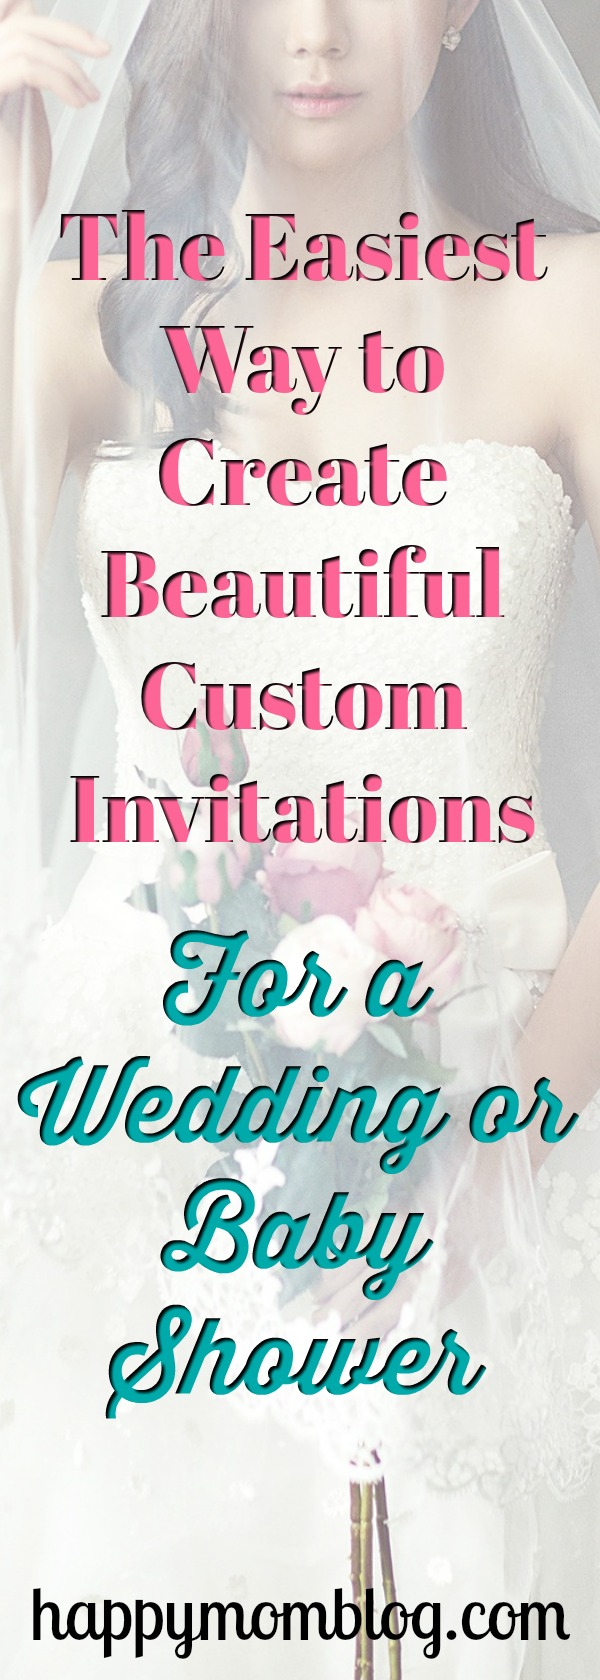 The easiest way to create custom invitations for your wedding or baby shower